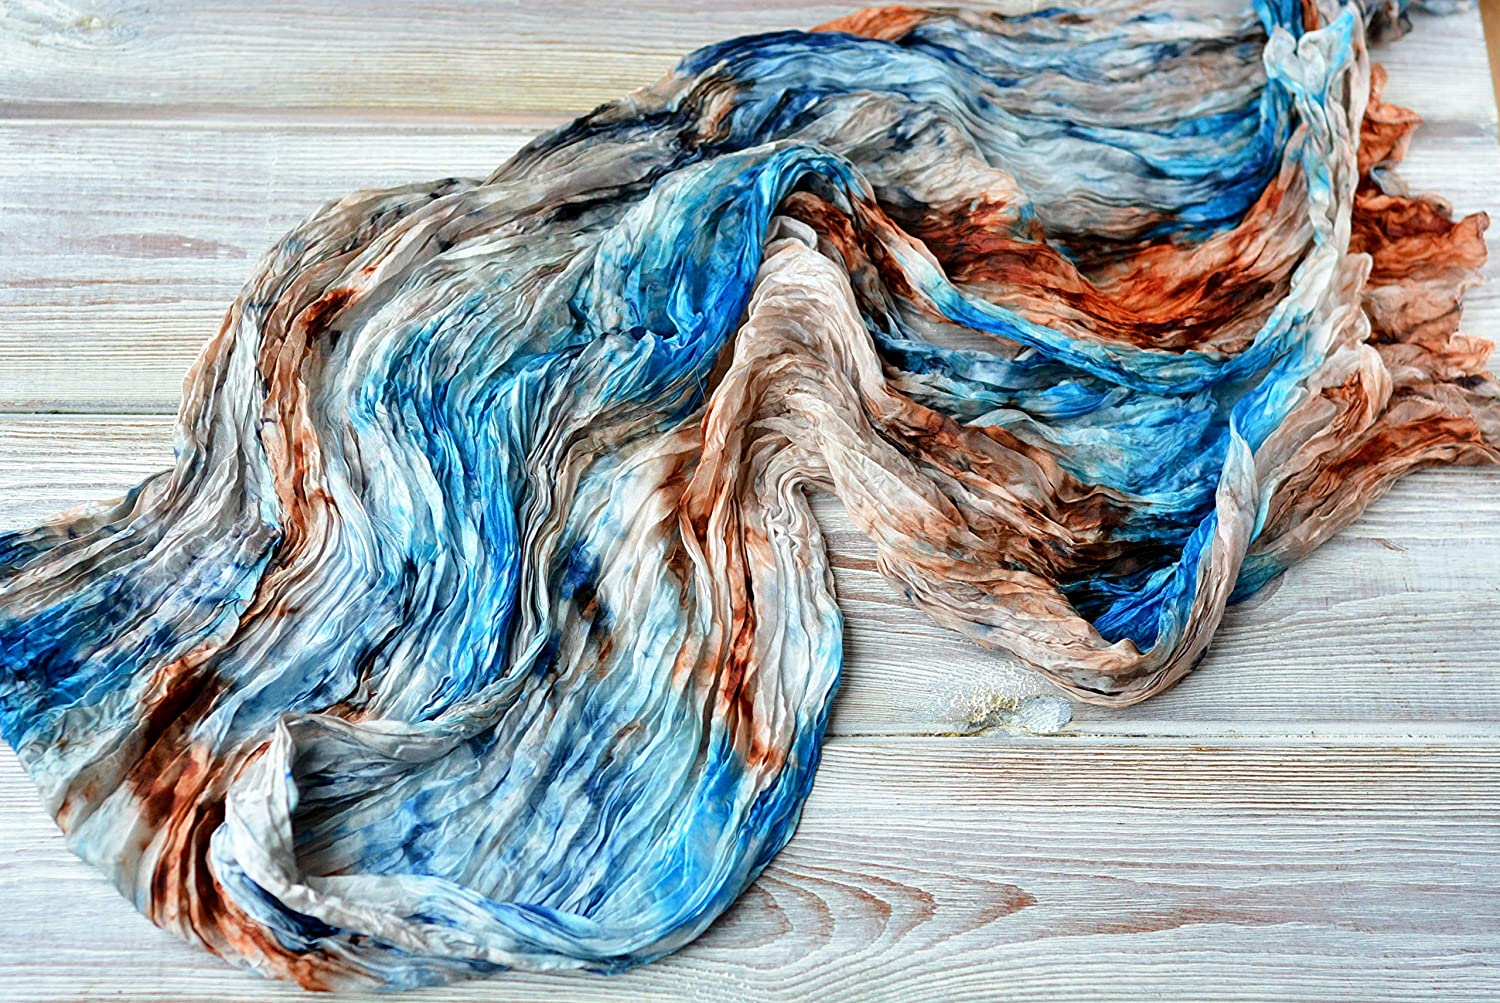 Handmade One of a kind Womens Shawl Unique Gifts for mom who has Everything Silk scarf Shawl for women in Blue and Brown is Soft and Cozy